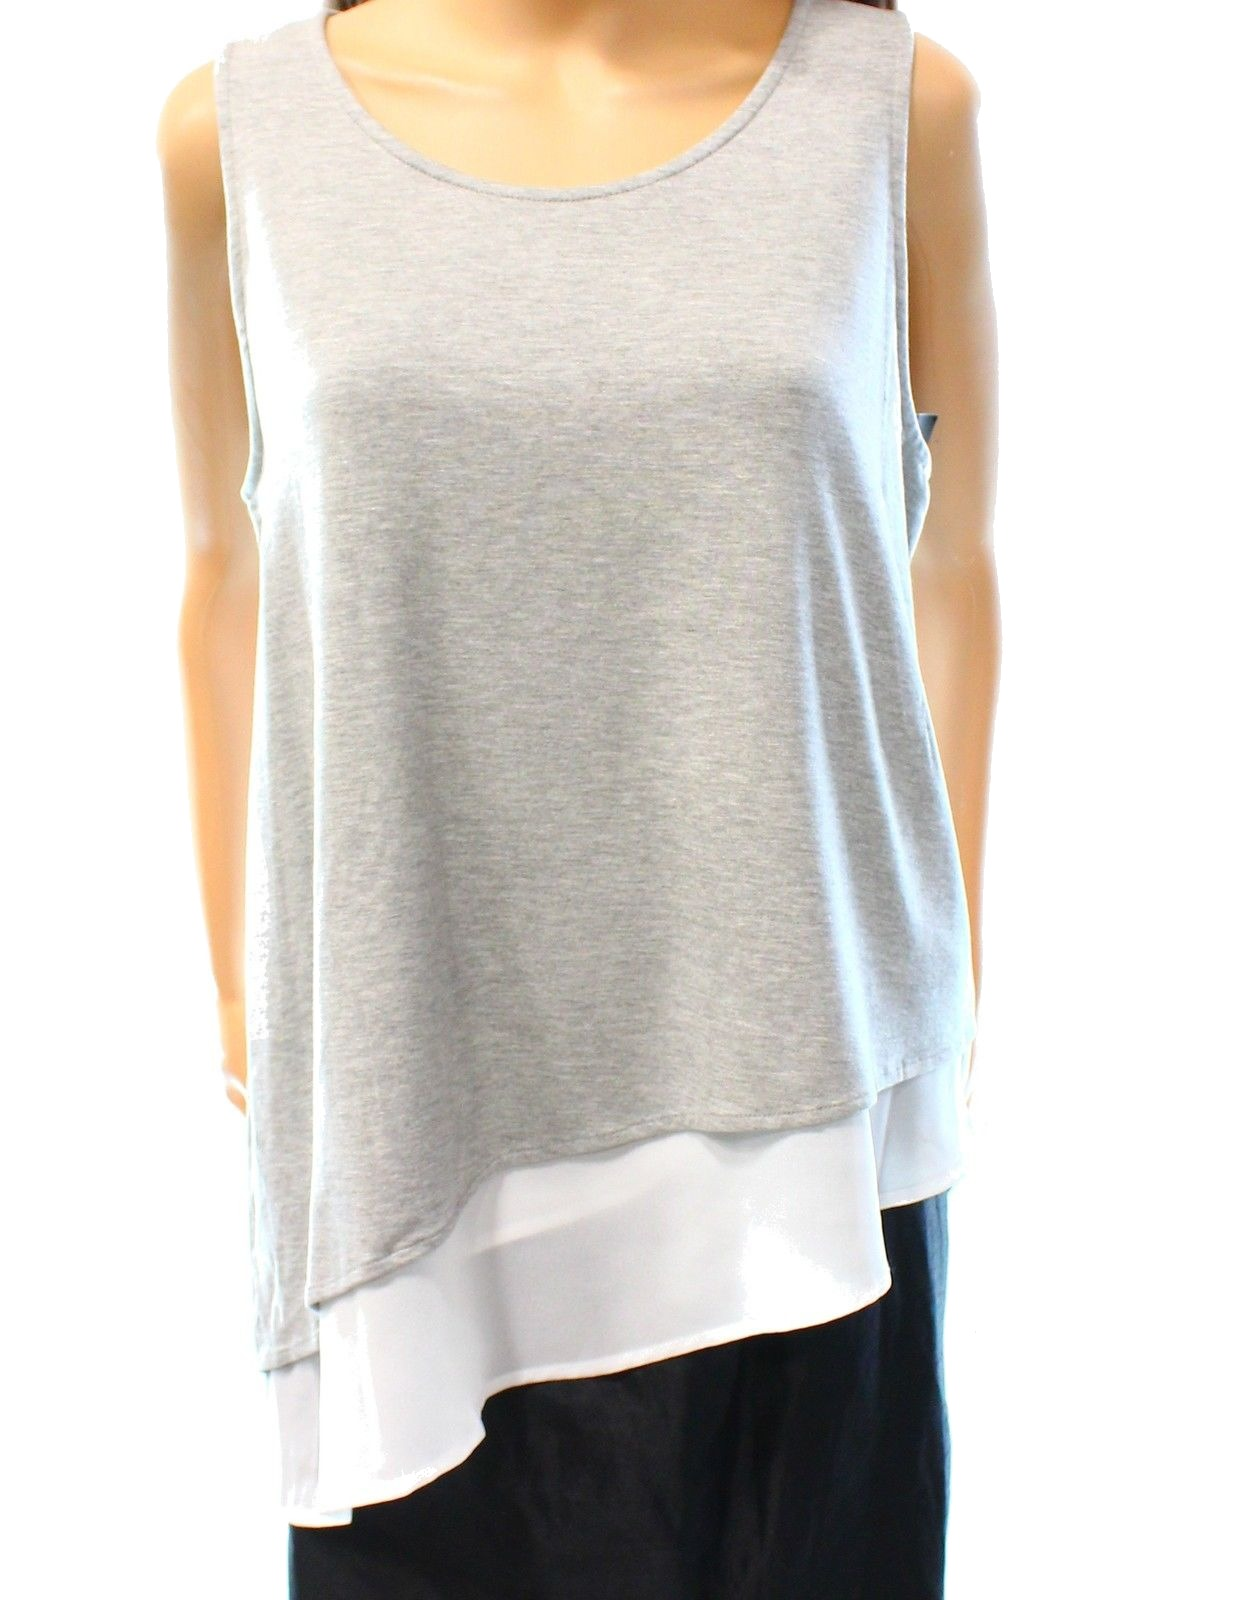 db66cc3b0268e7 We have more INC in Size M - Click Here Click to see all Tops   Blouses in Size  M